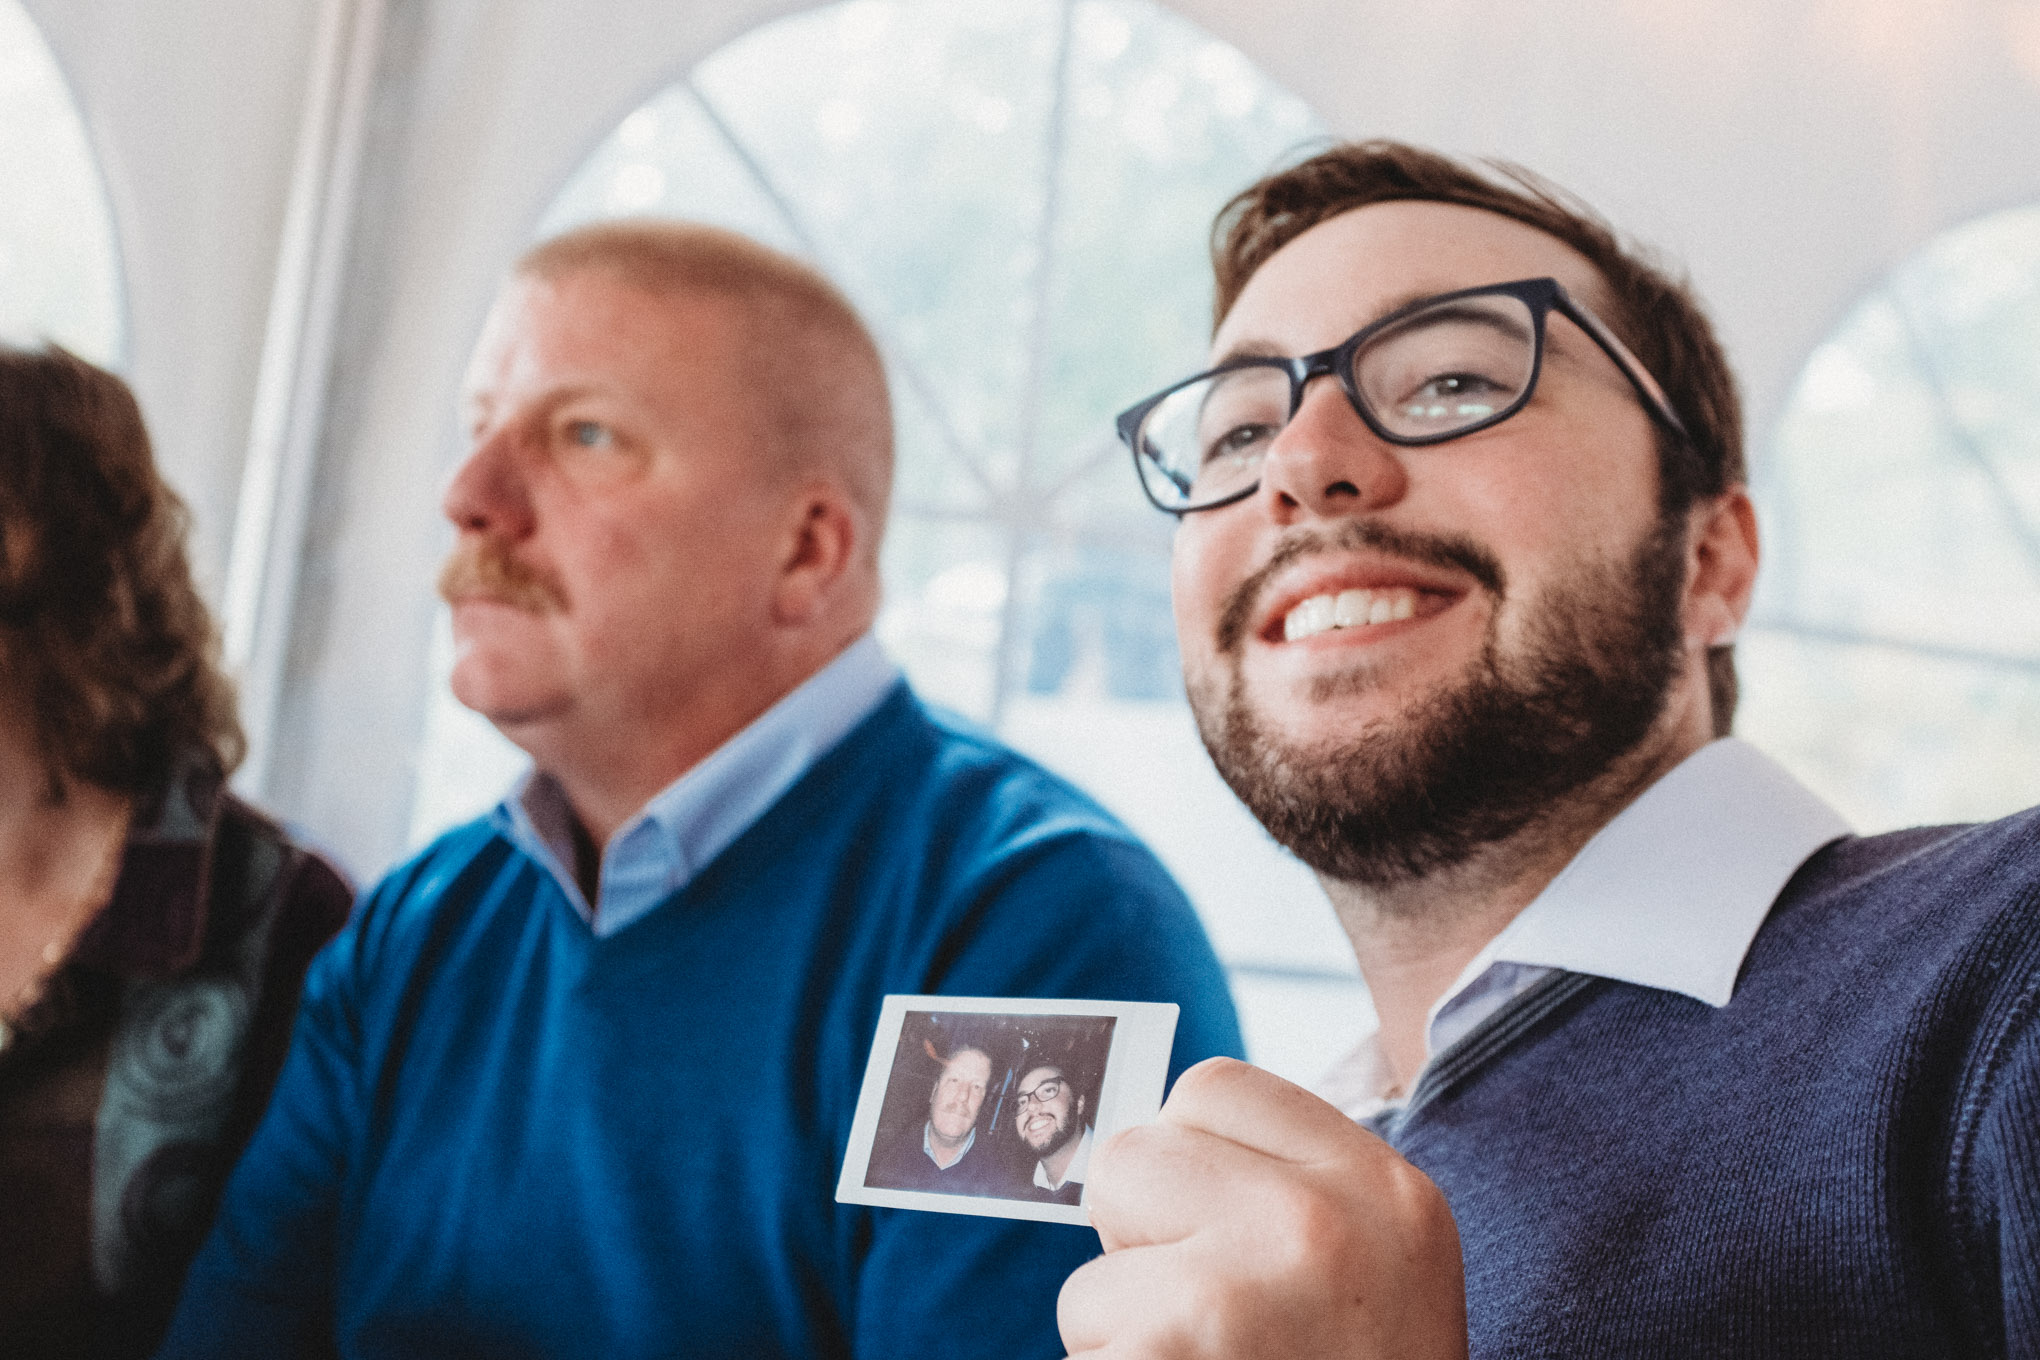 My younger brother Austin holds up a polariod of him and his dad, who sits behind him, unamused.